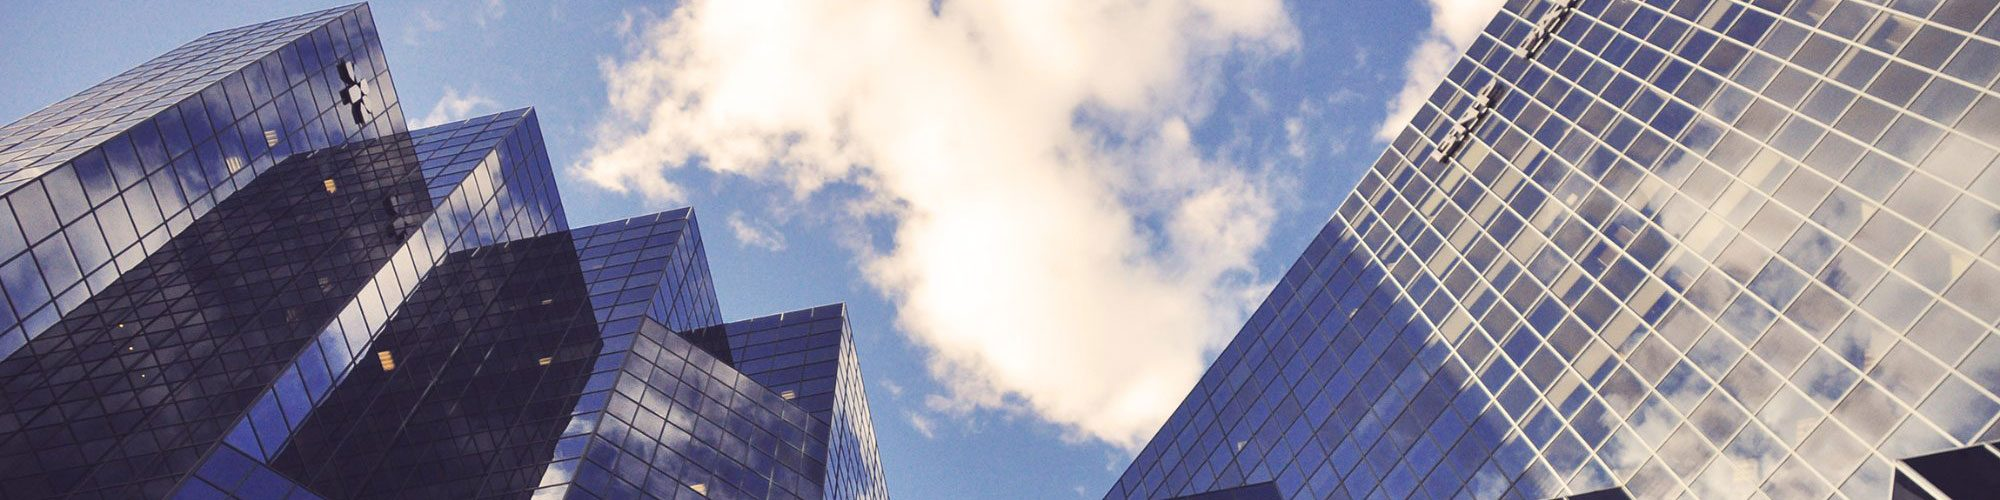 Office building in front of a cloudy blue sky.